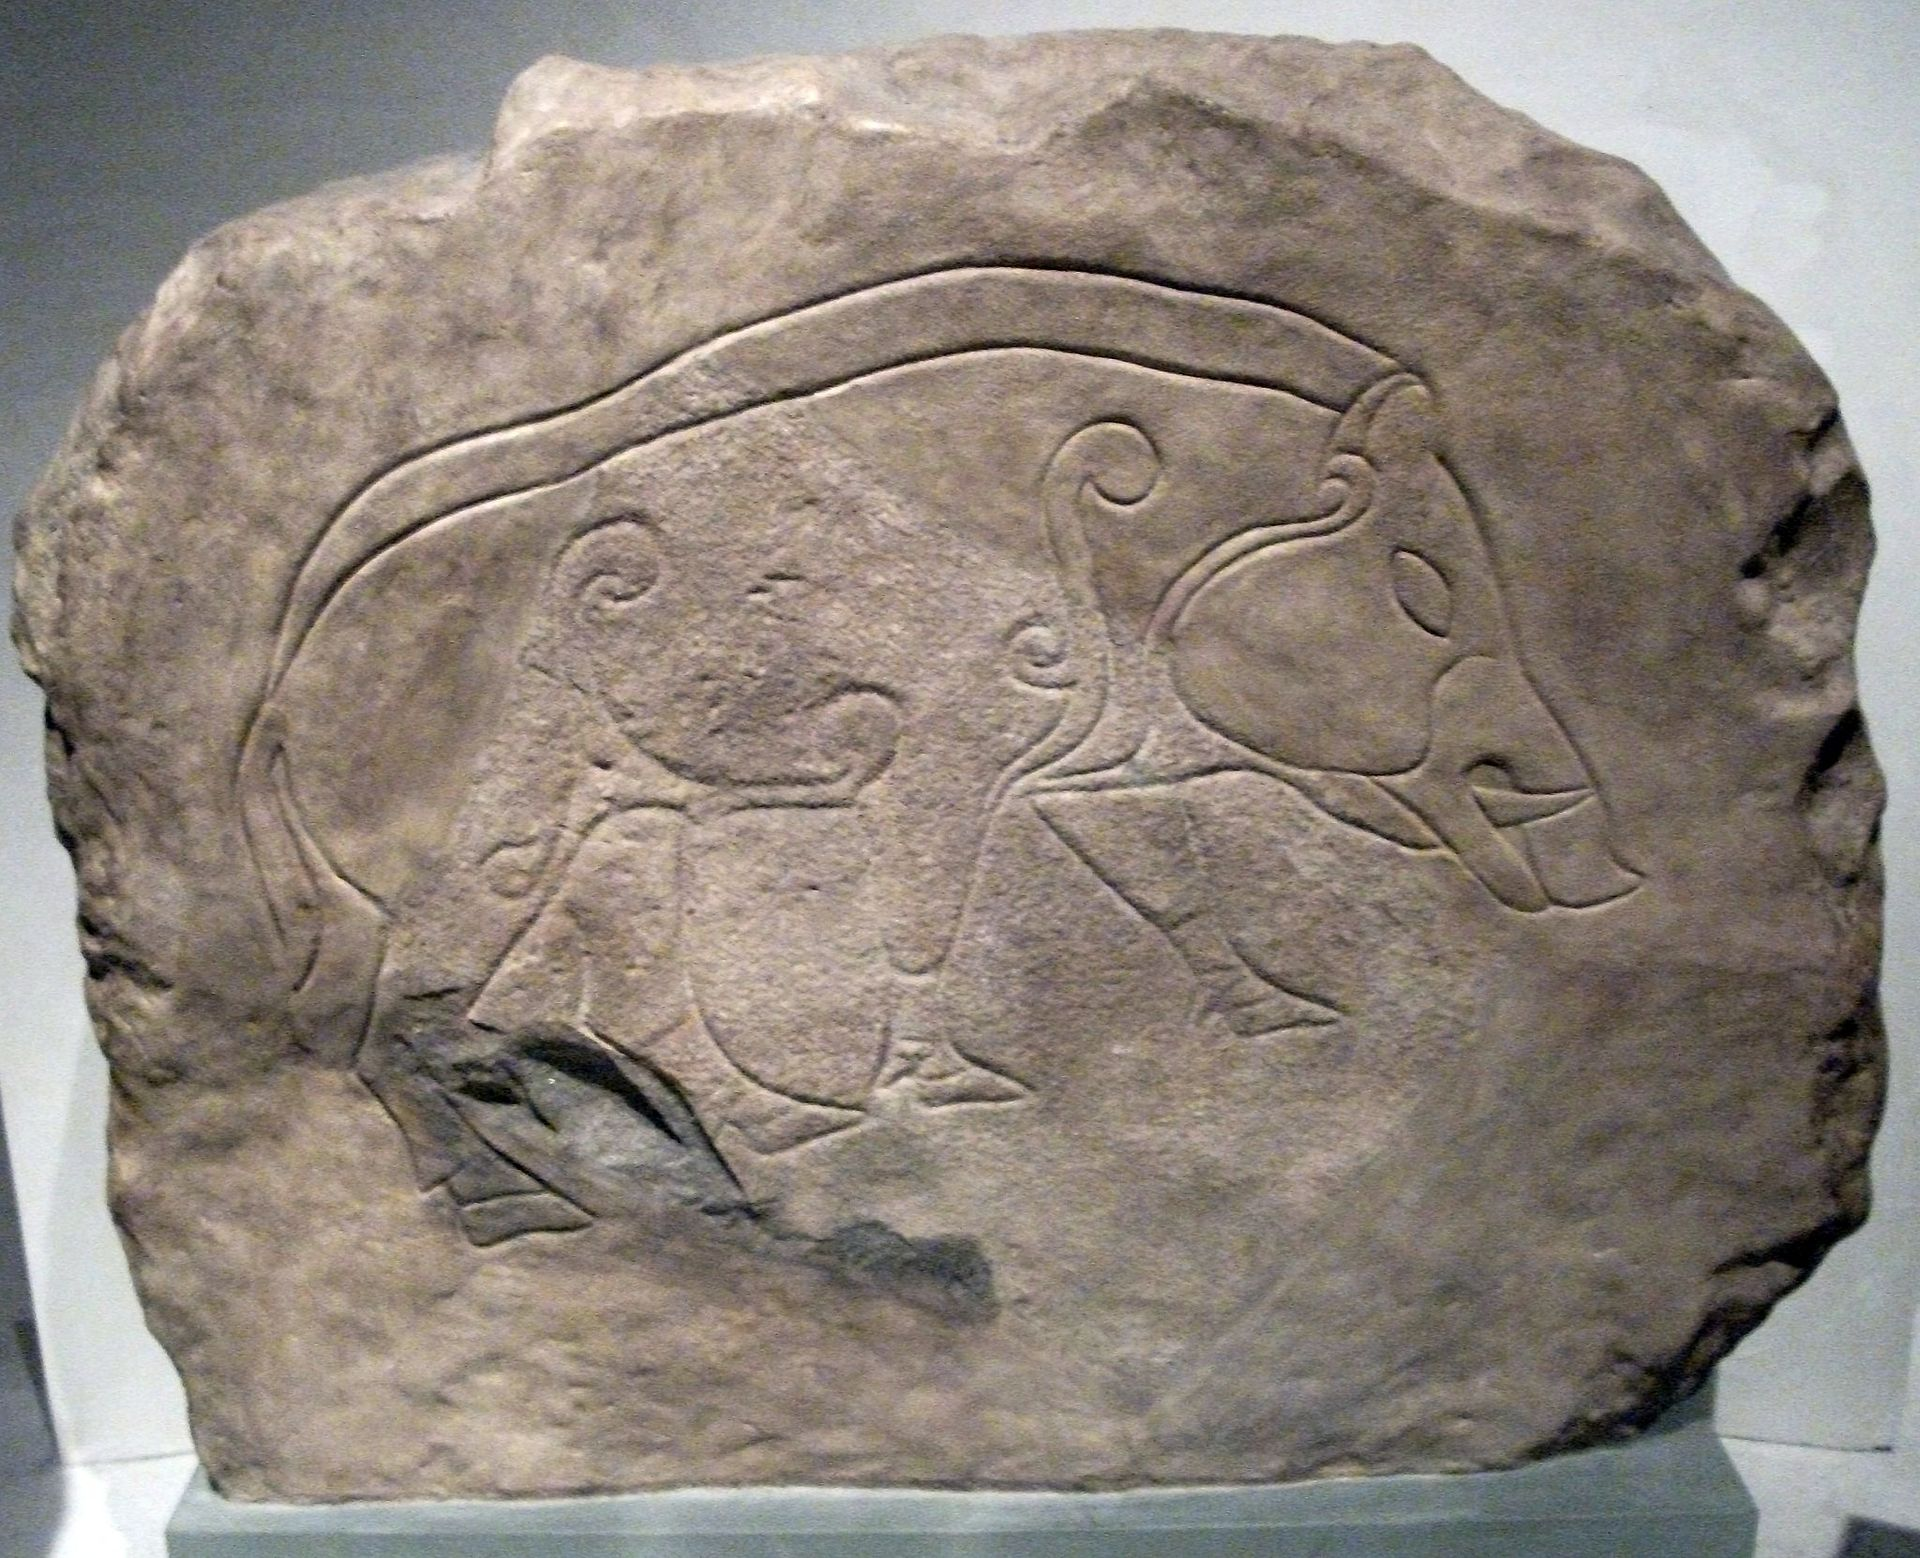 1920px-Pictish_Stones_in_the_Museum_of_S